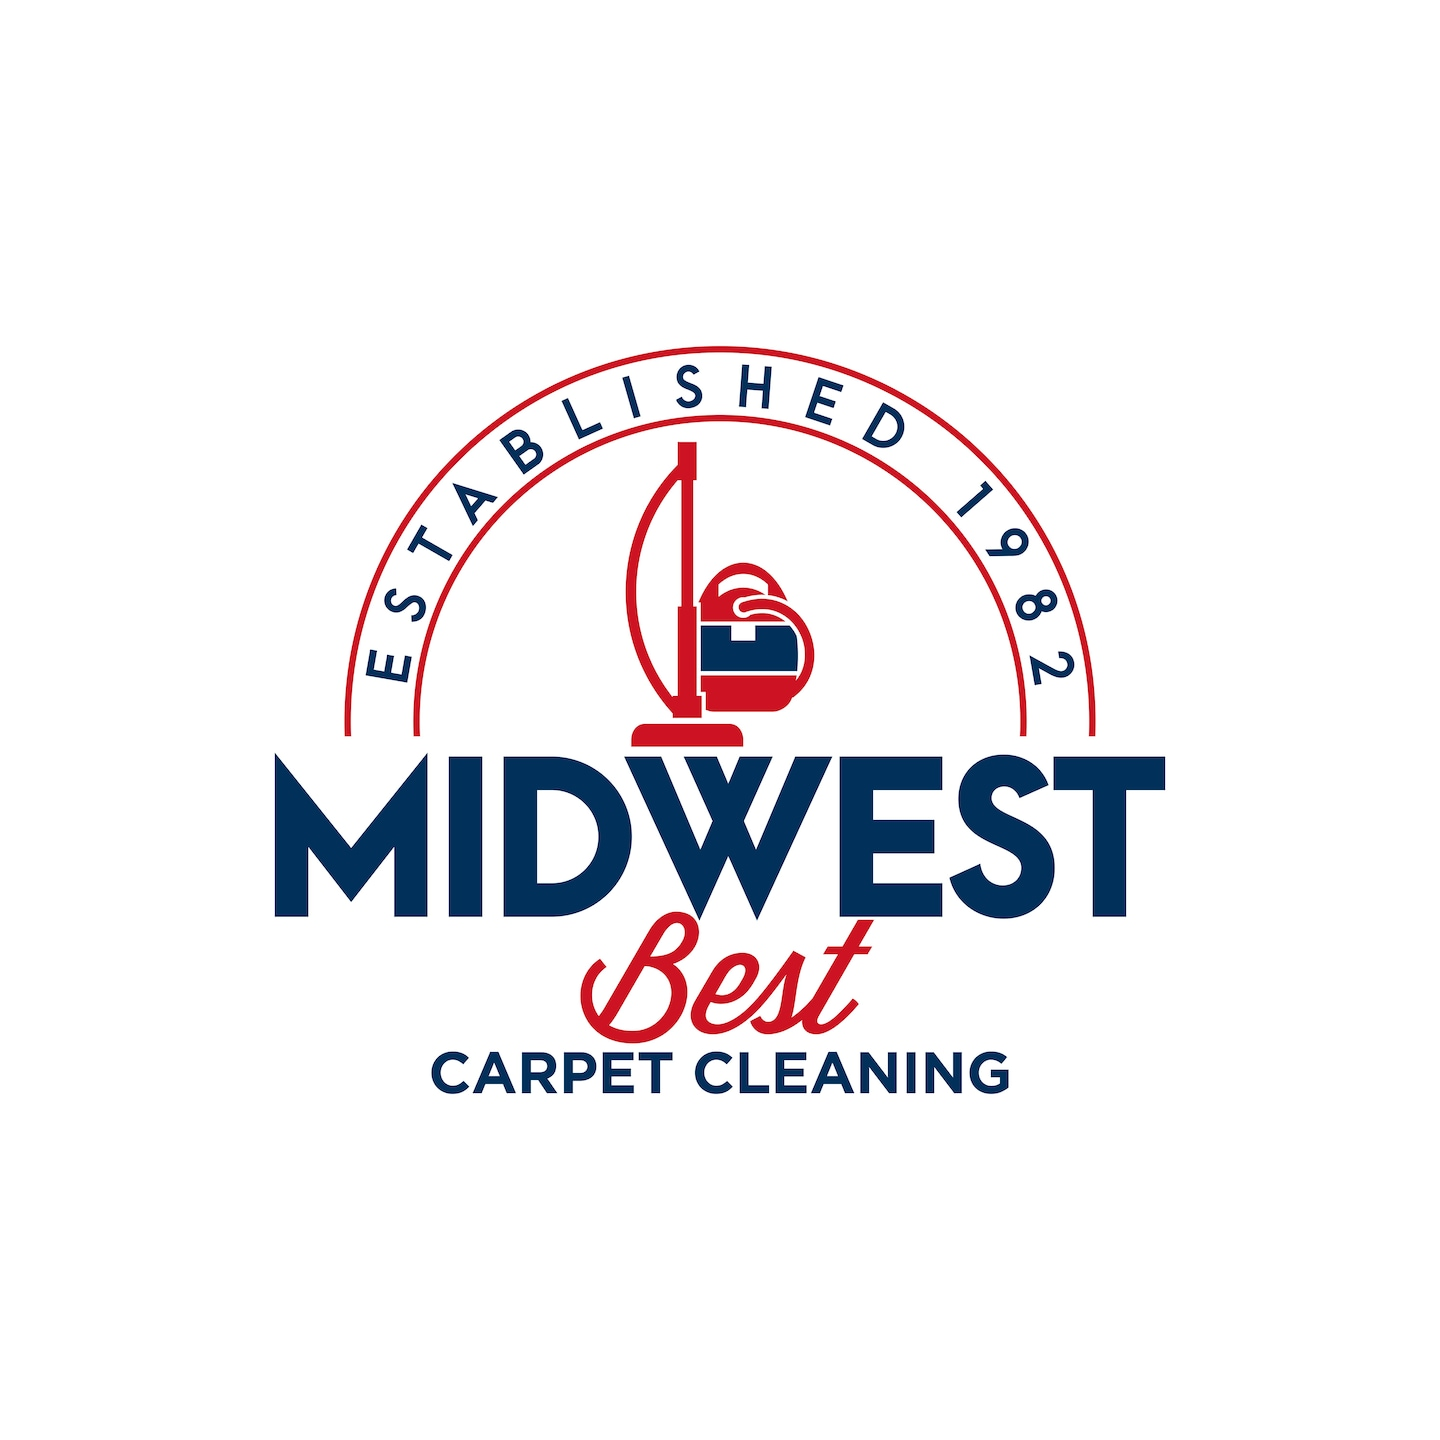 Midwest Best Carpet Cleaning, LLC